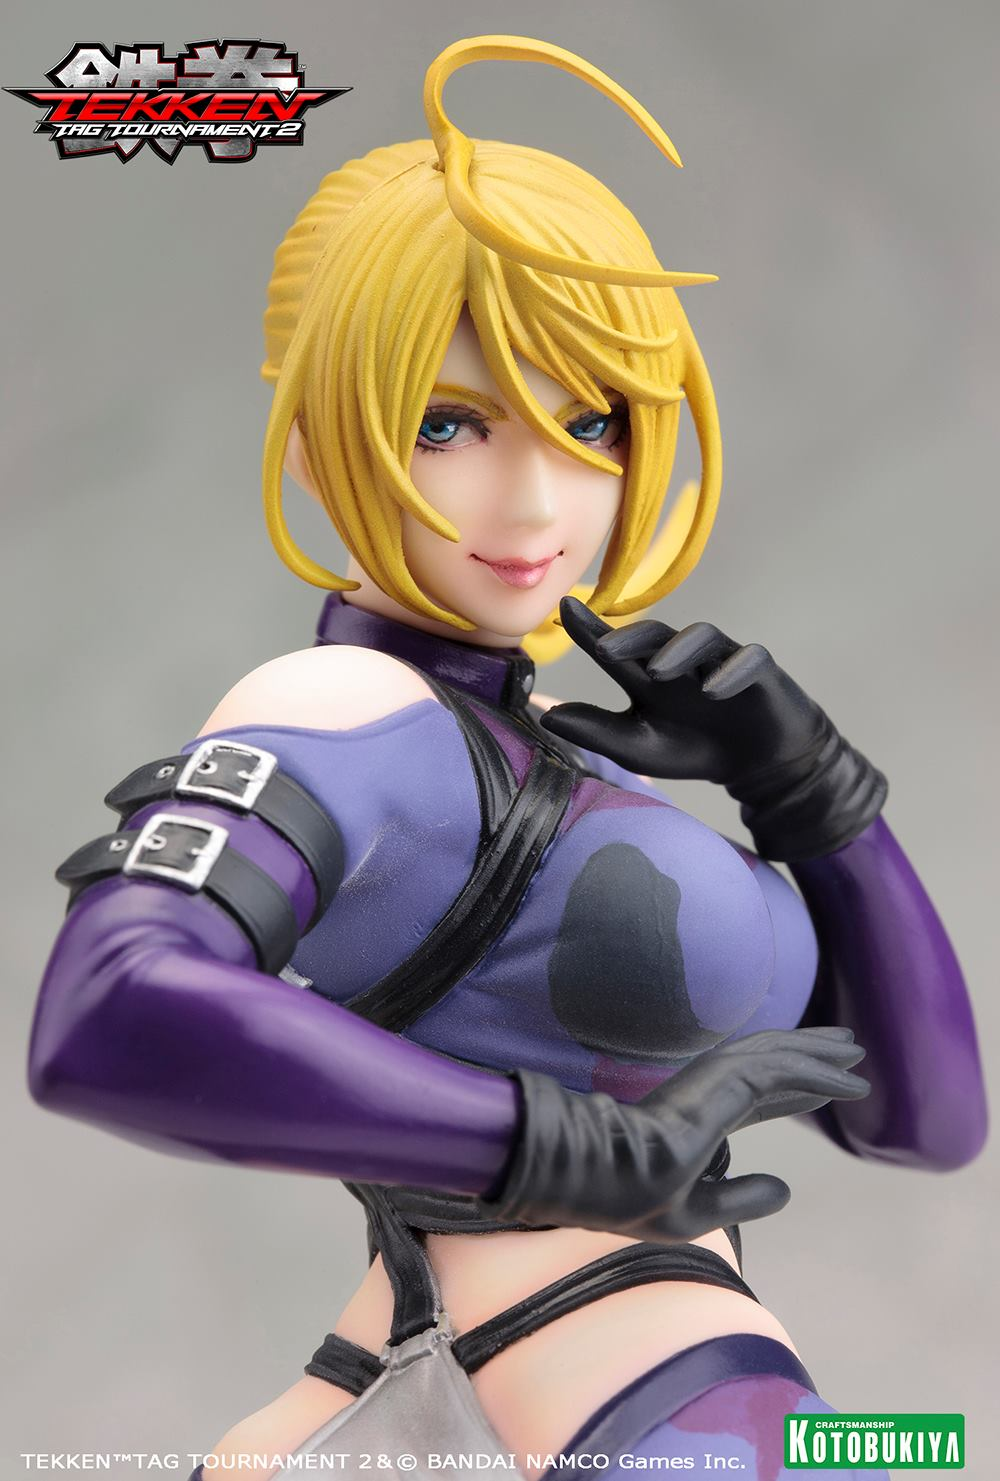 nina-williams-tekken-tournament-2-bishoujo-statue-6